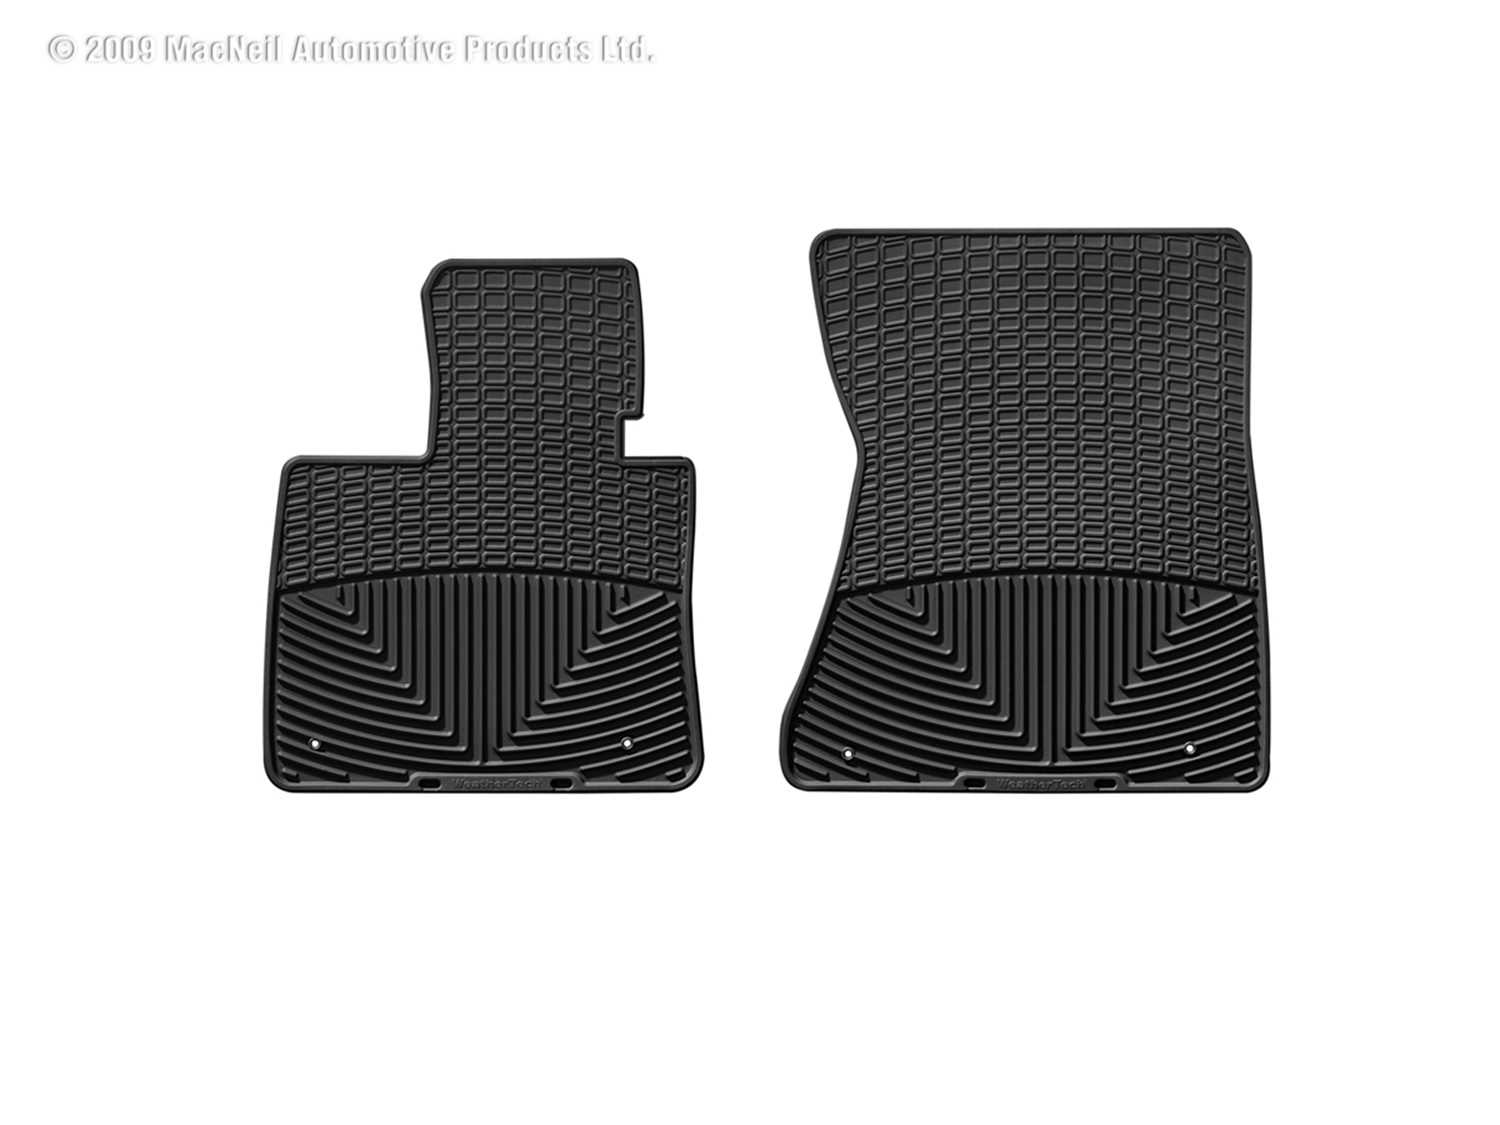 W74 WeatherTech All Weather Floor Mats